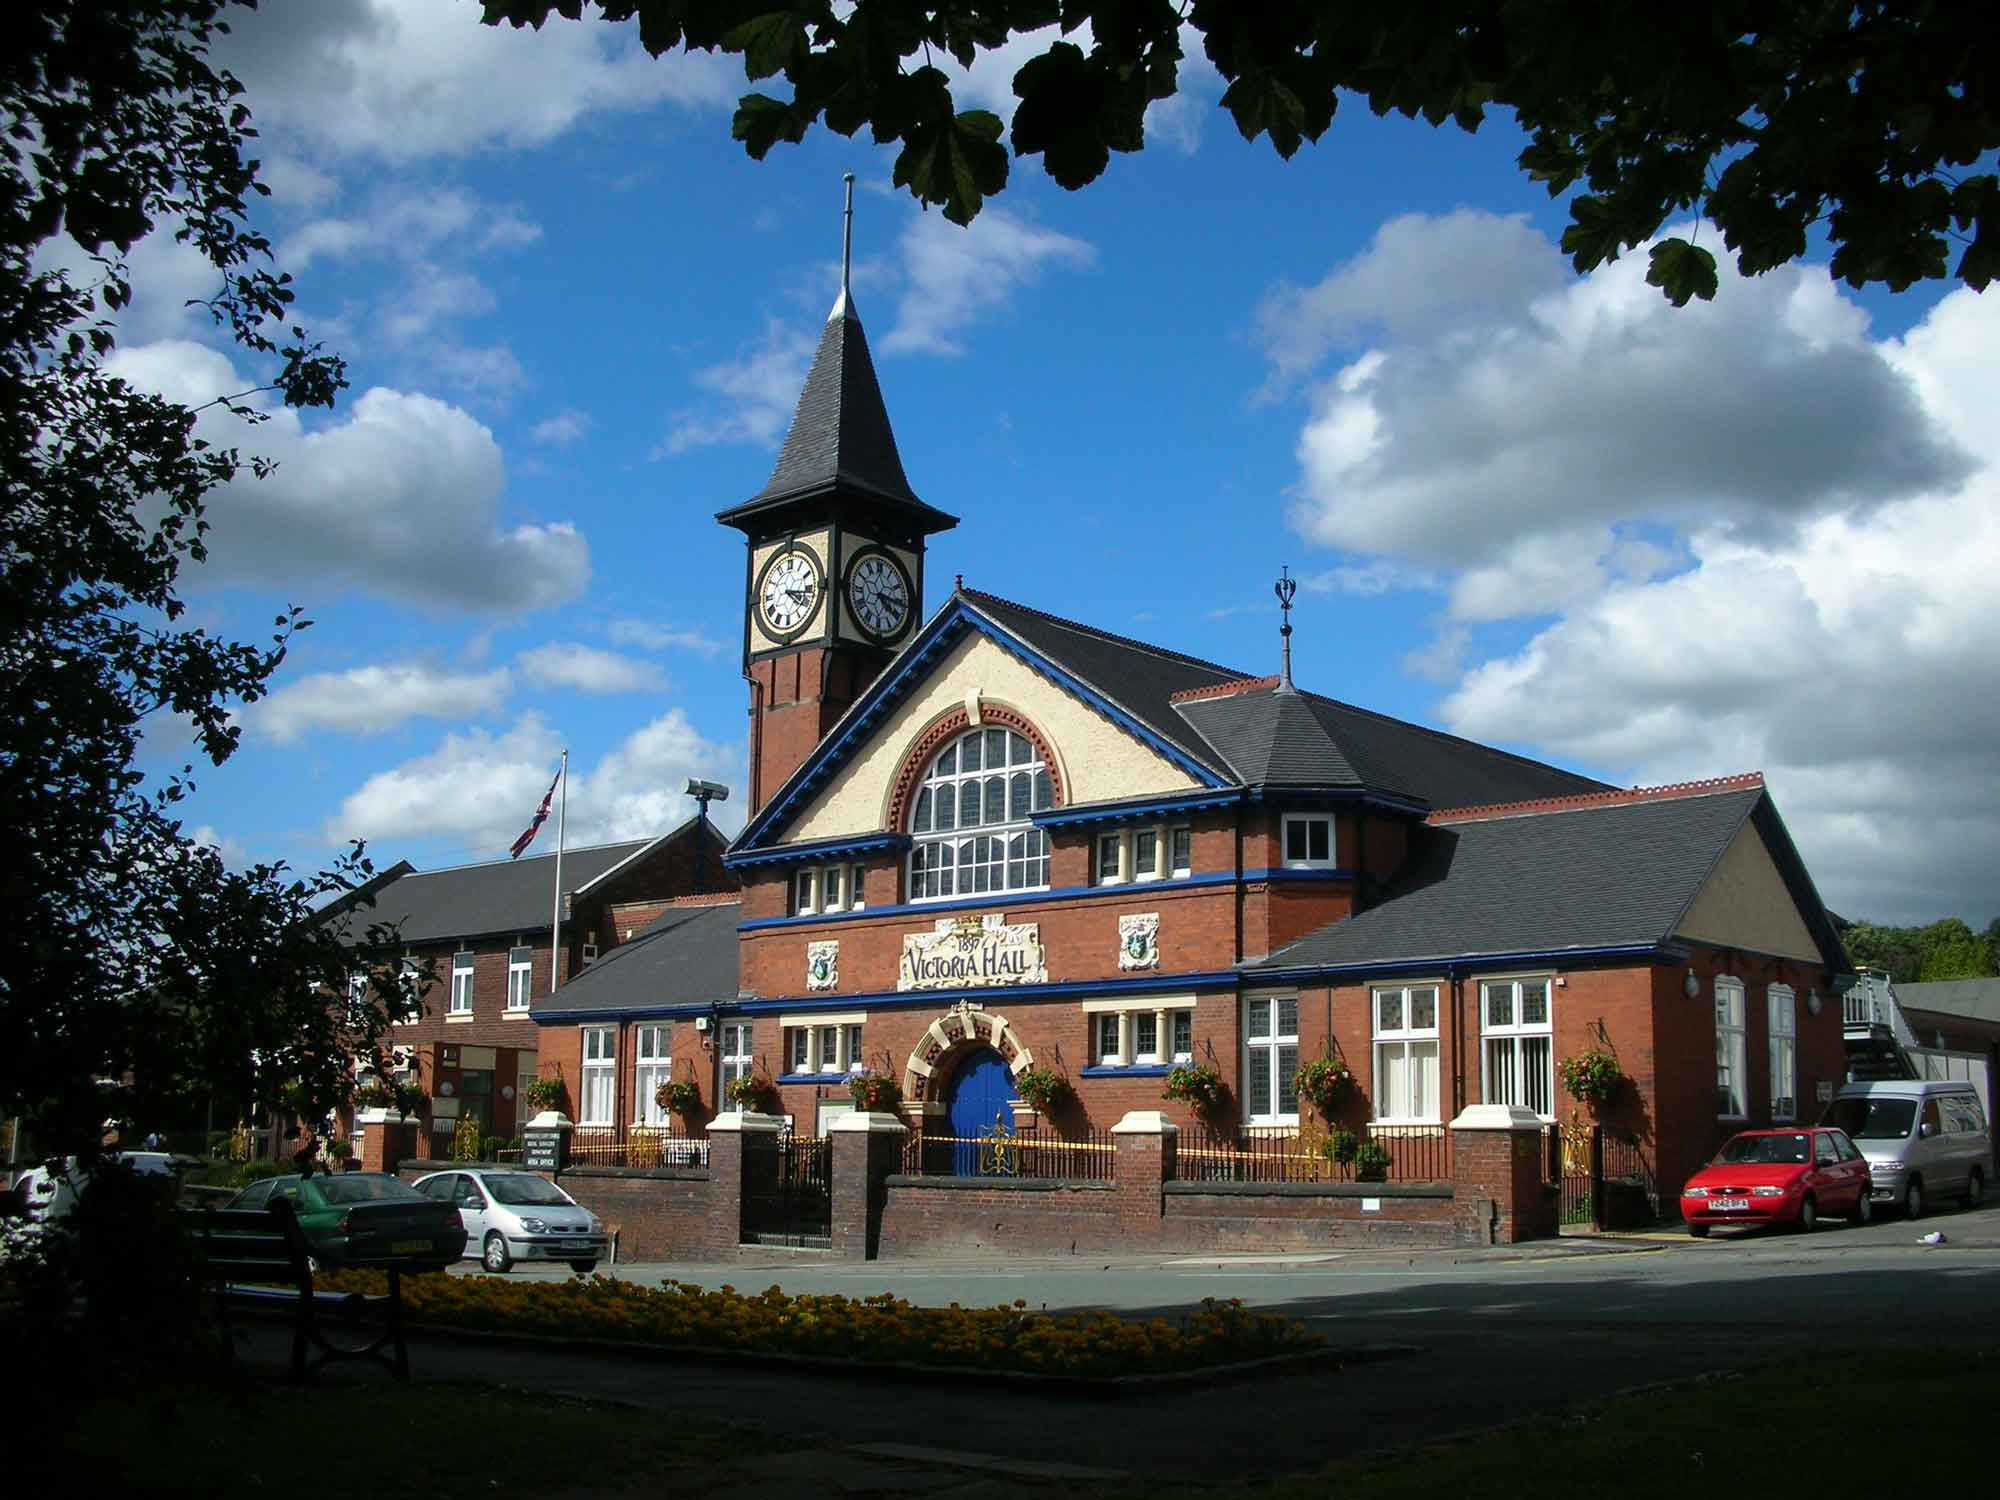 victoria hall on liverpool road in kidsgrove